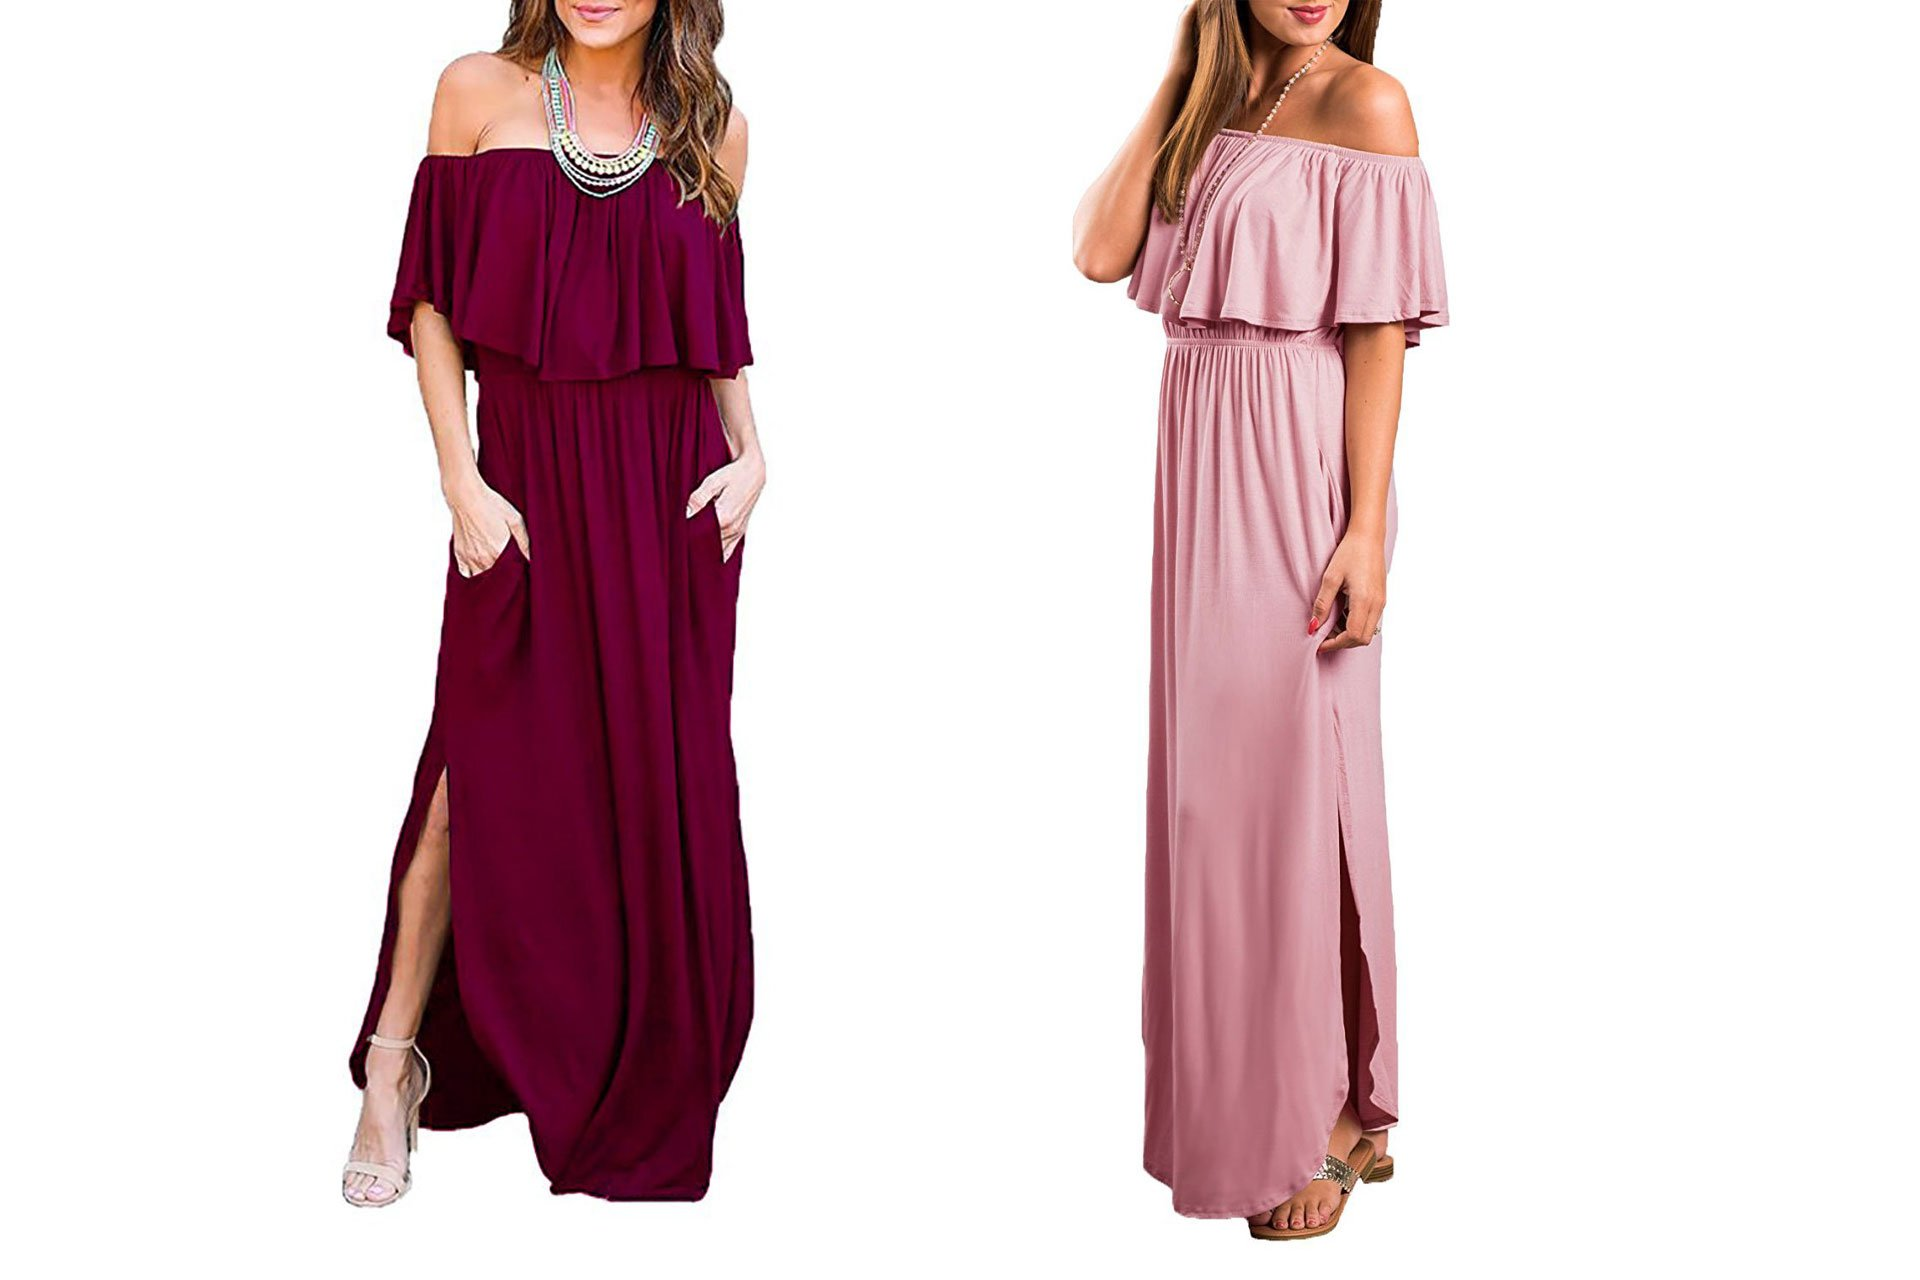 engagement party dress ideas:   Off The Shoulder Ruffle Party Dresses Side Split Beach Maxi Dress